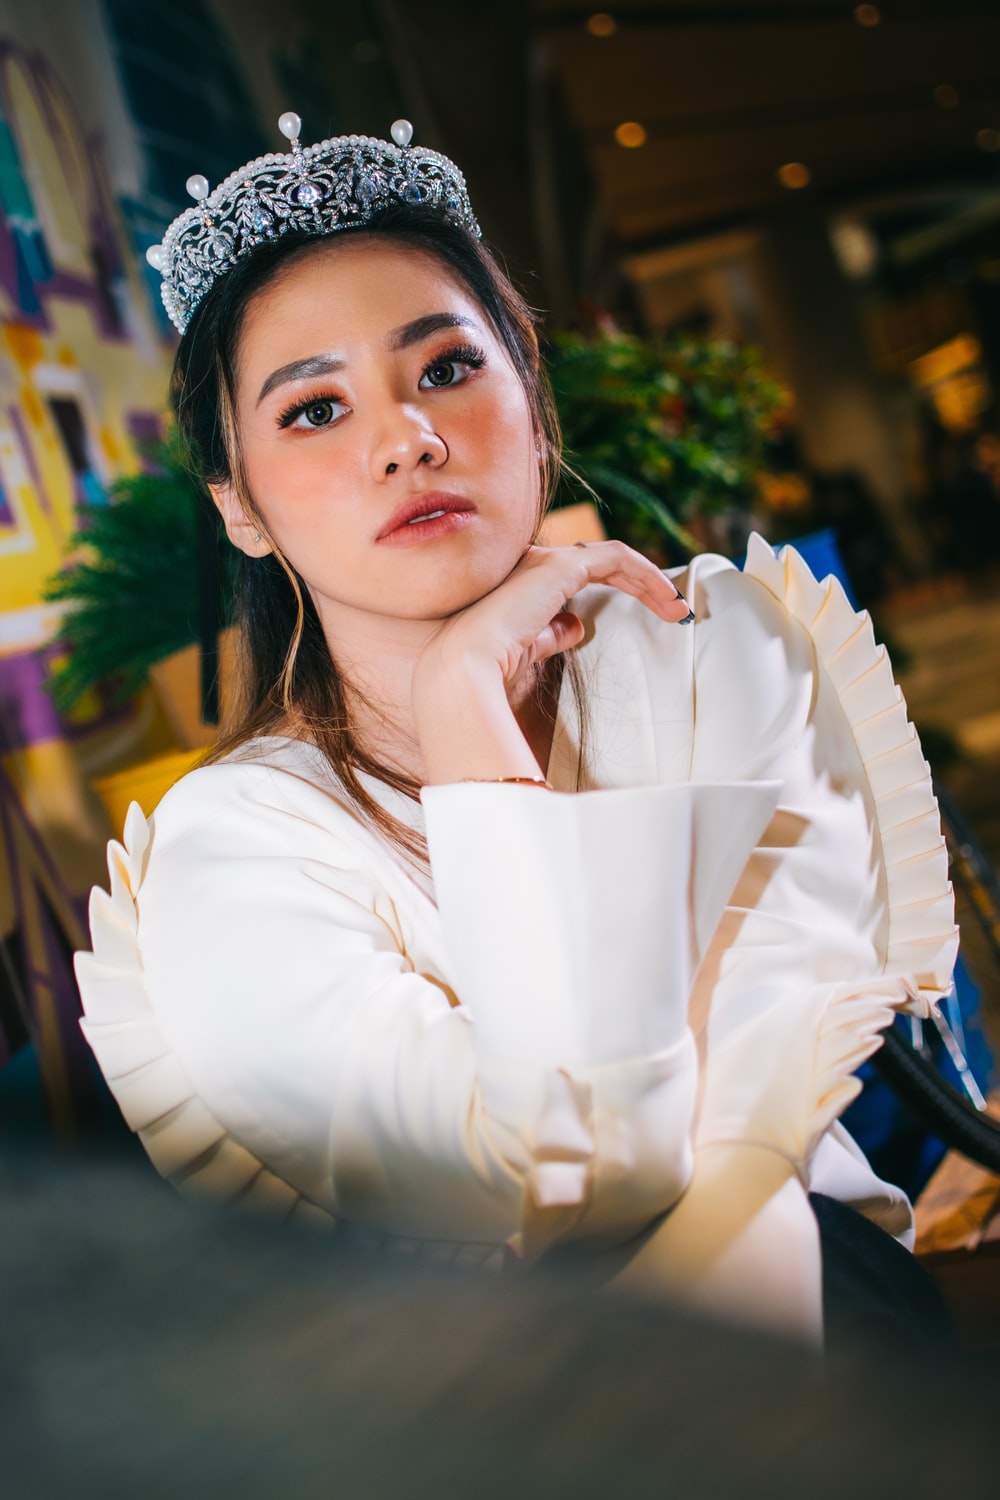 woman wearing white long-sleeved top and silver crown